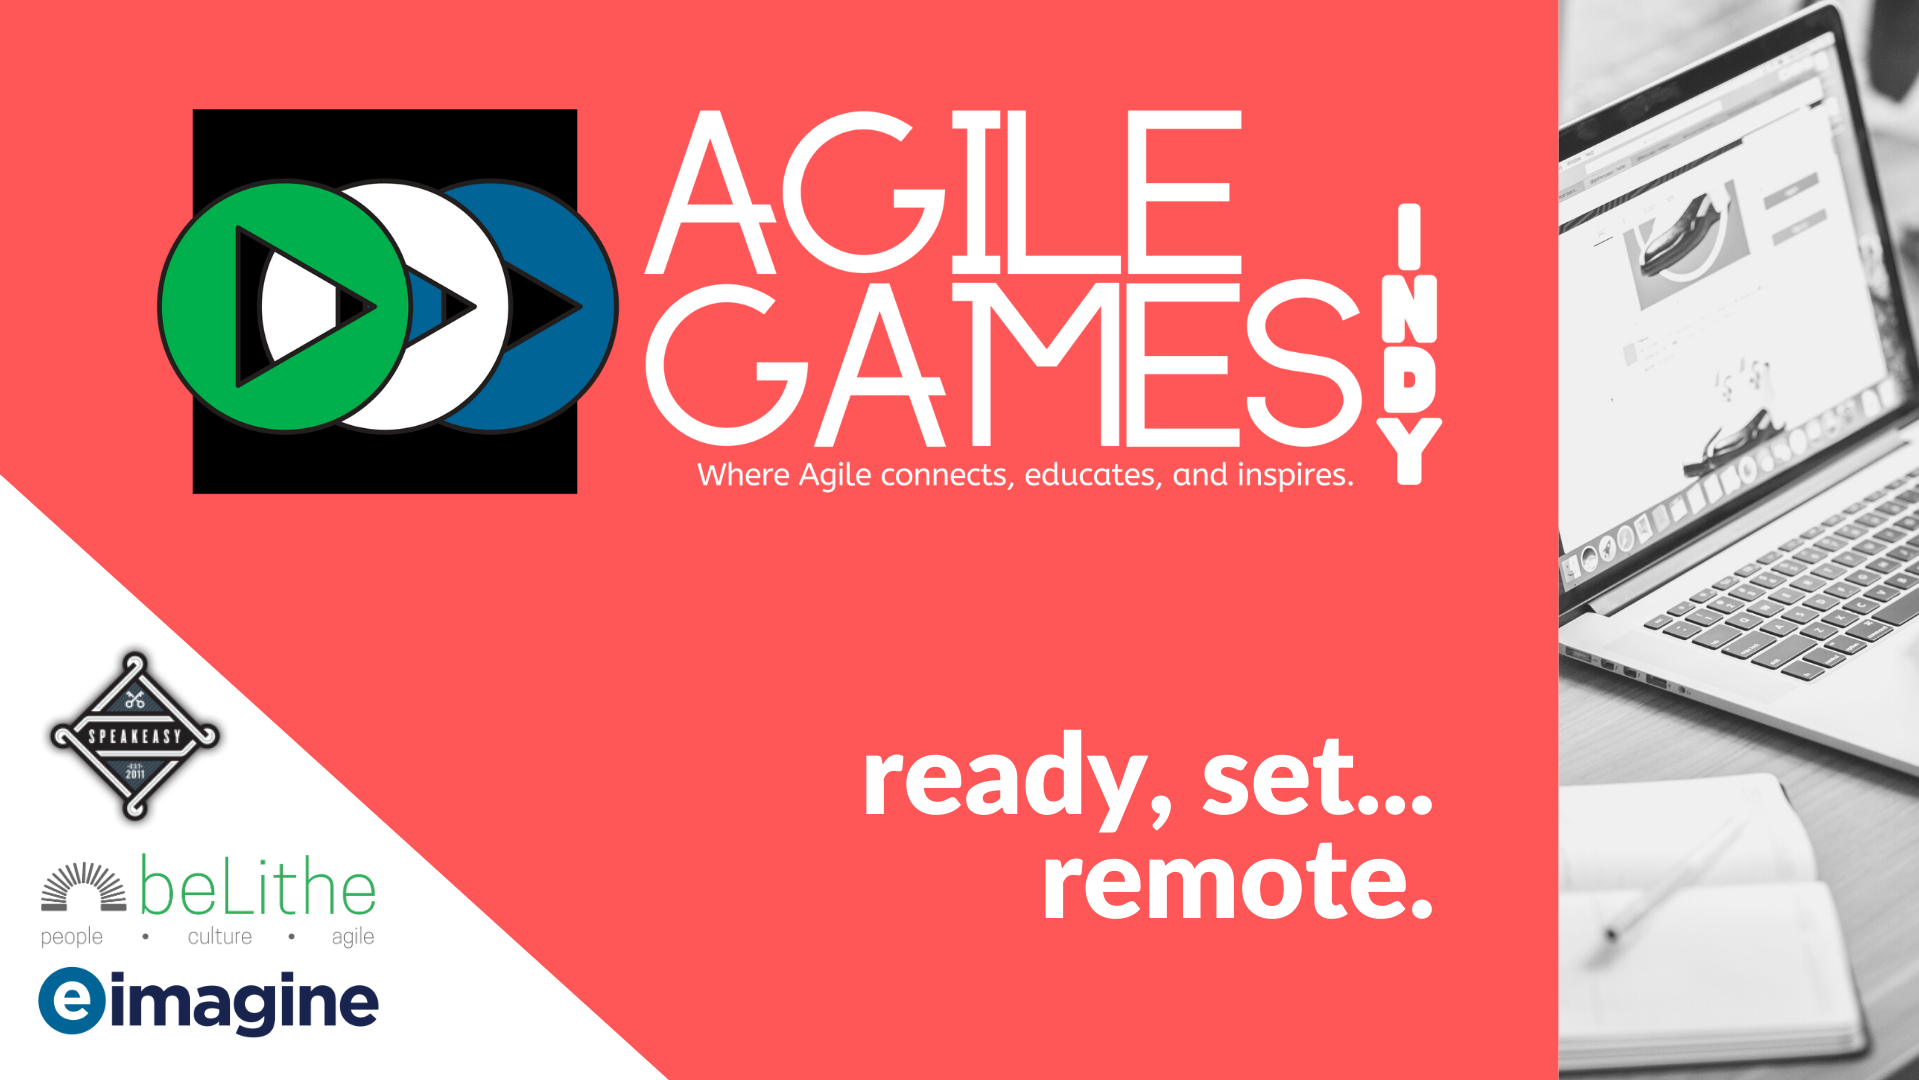 Agile Games Indy